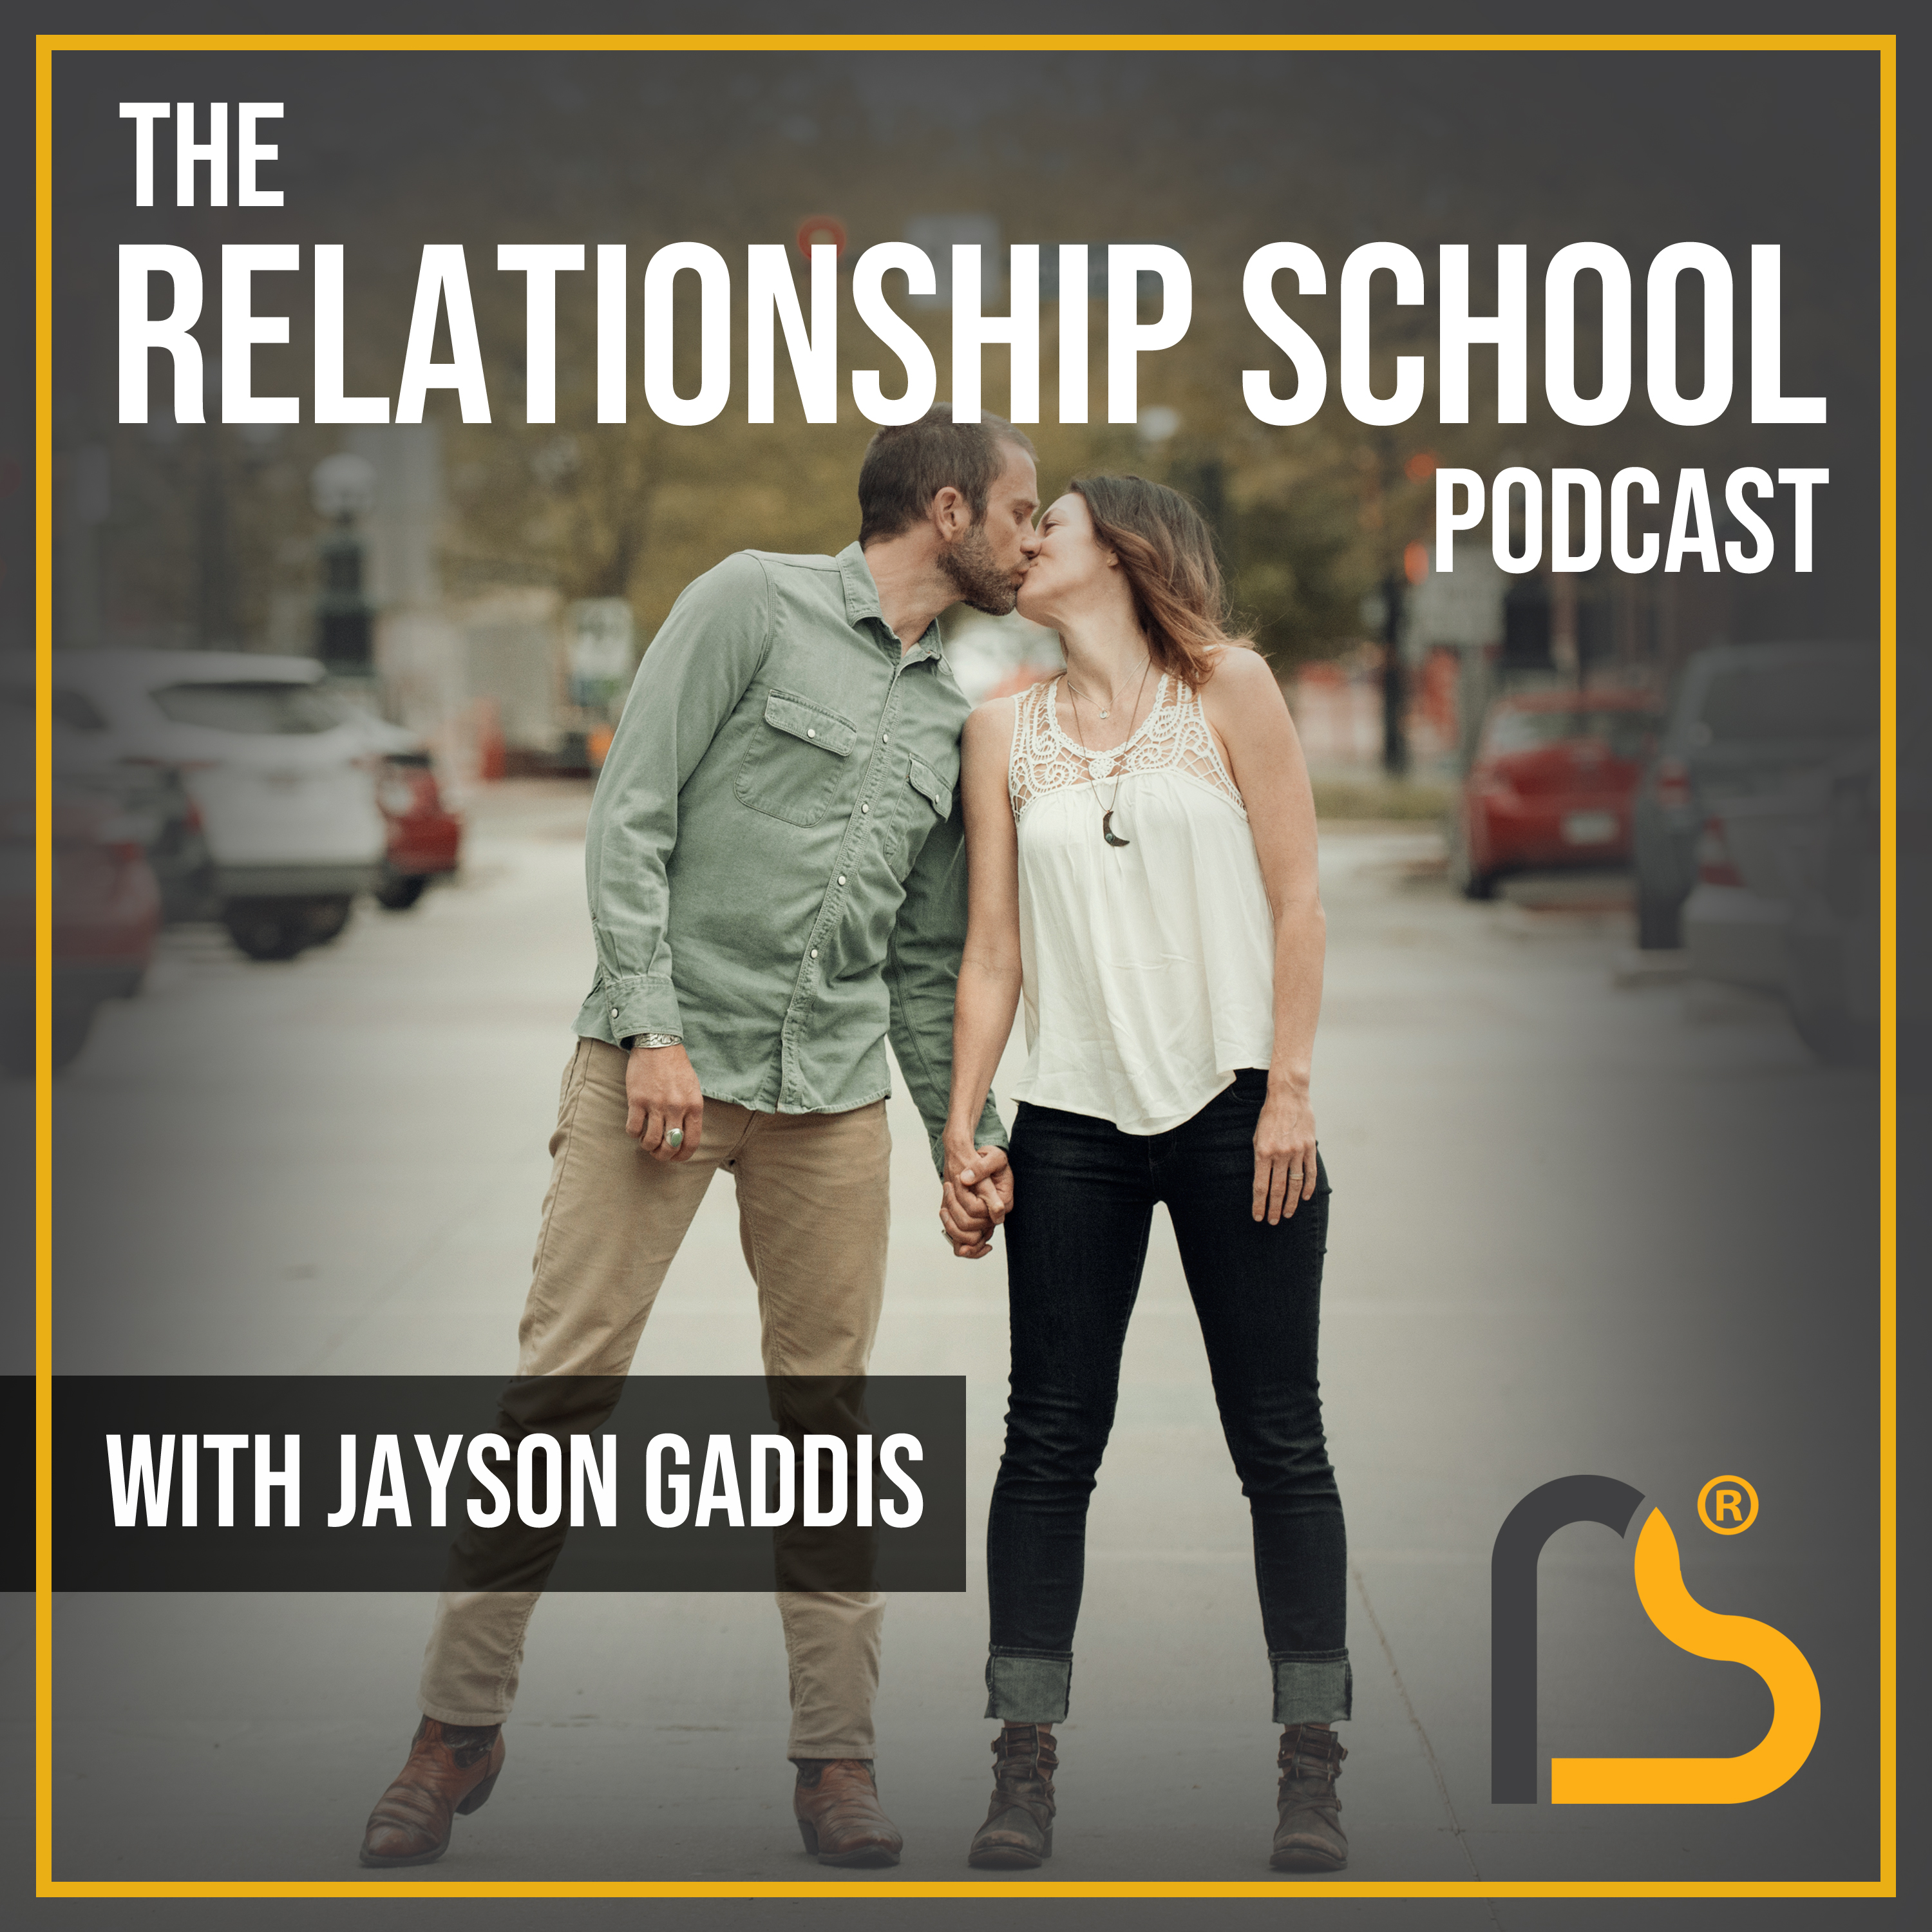 The Relationship School Podcast - Creating Systems to be Less Distracted & More Available - Nir Eyal - 268